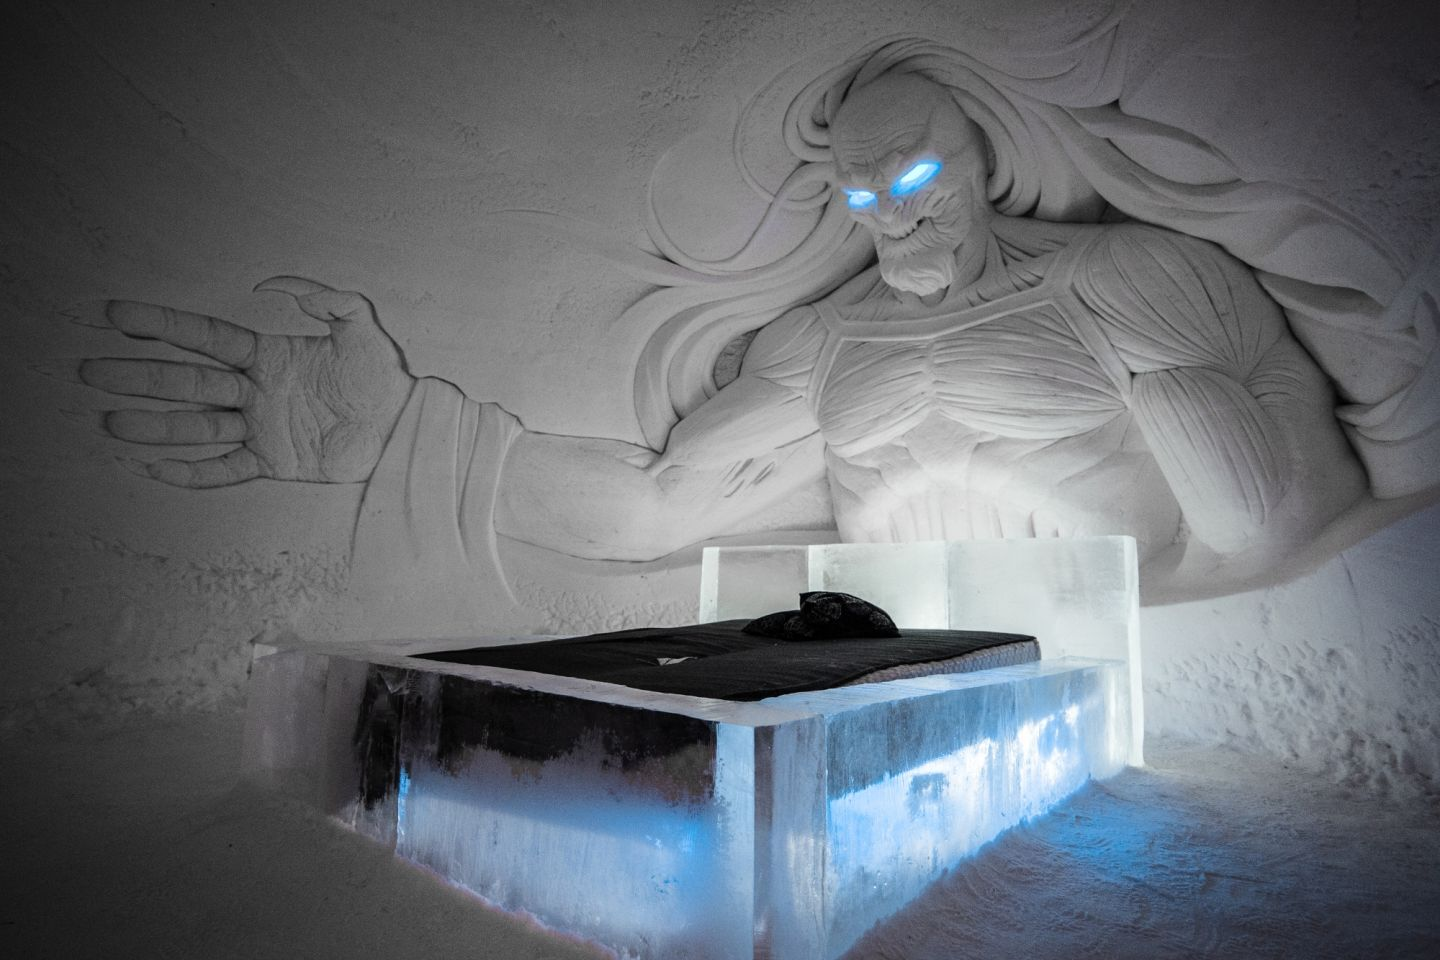 Game of Thrones Snowvillage bed